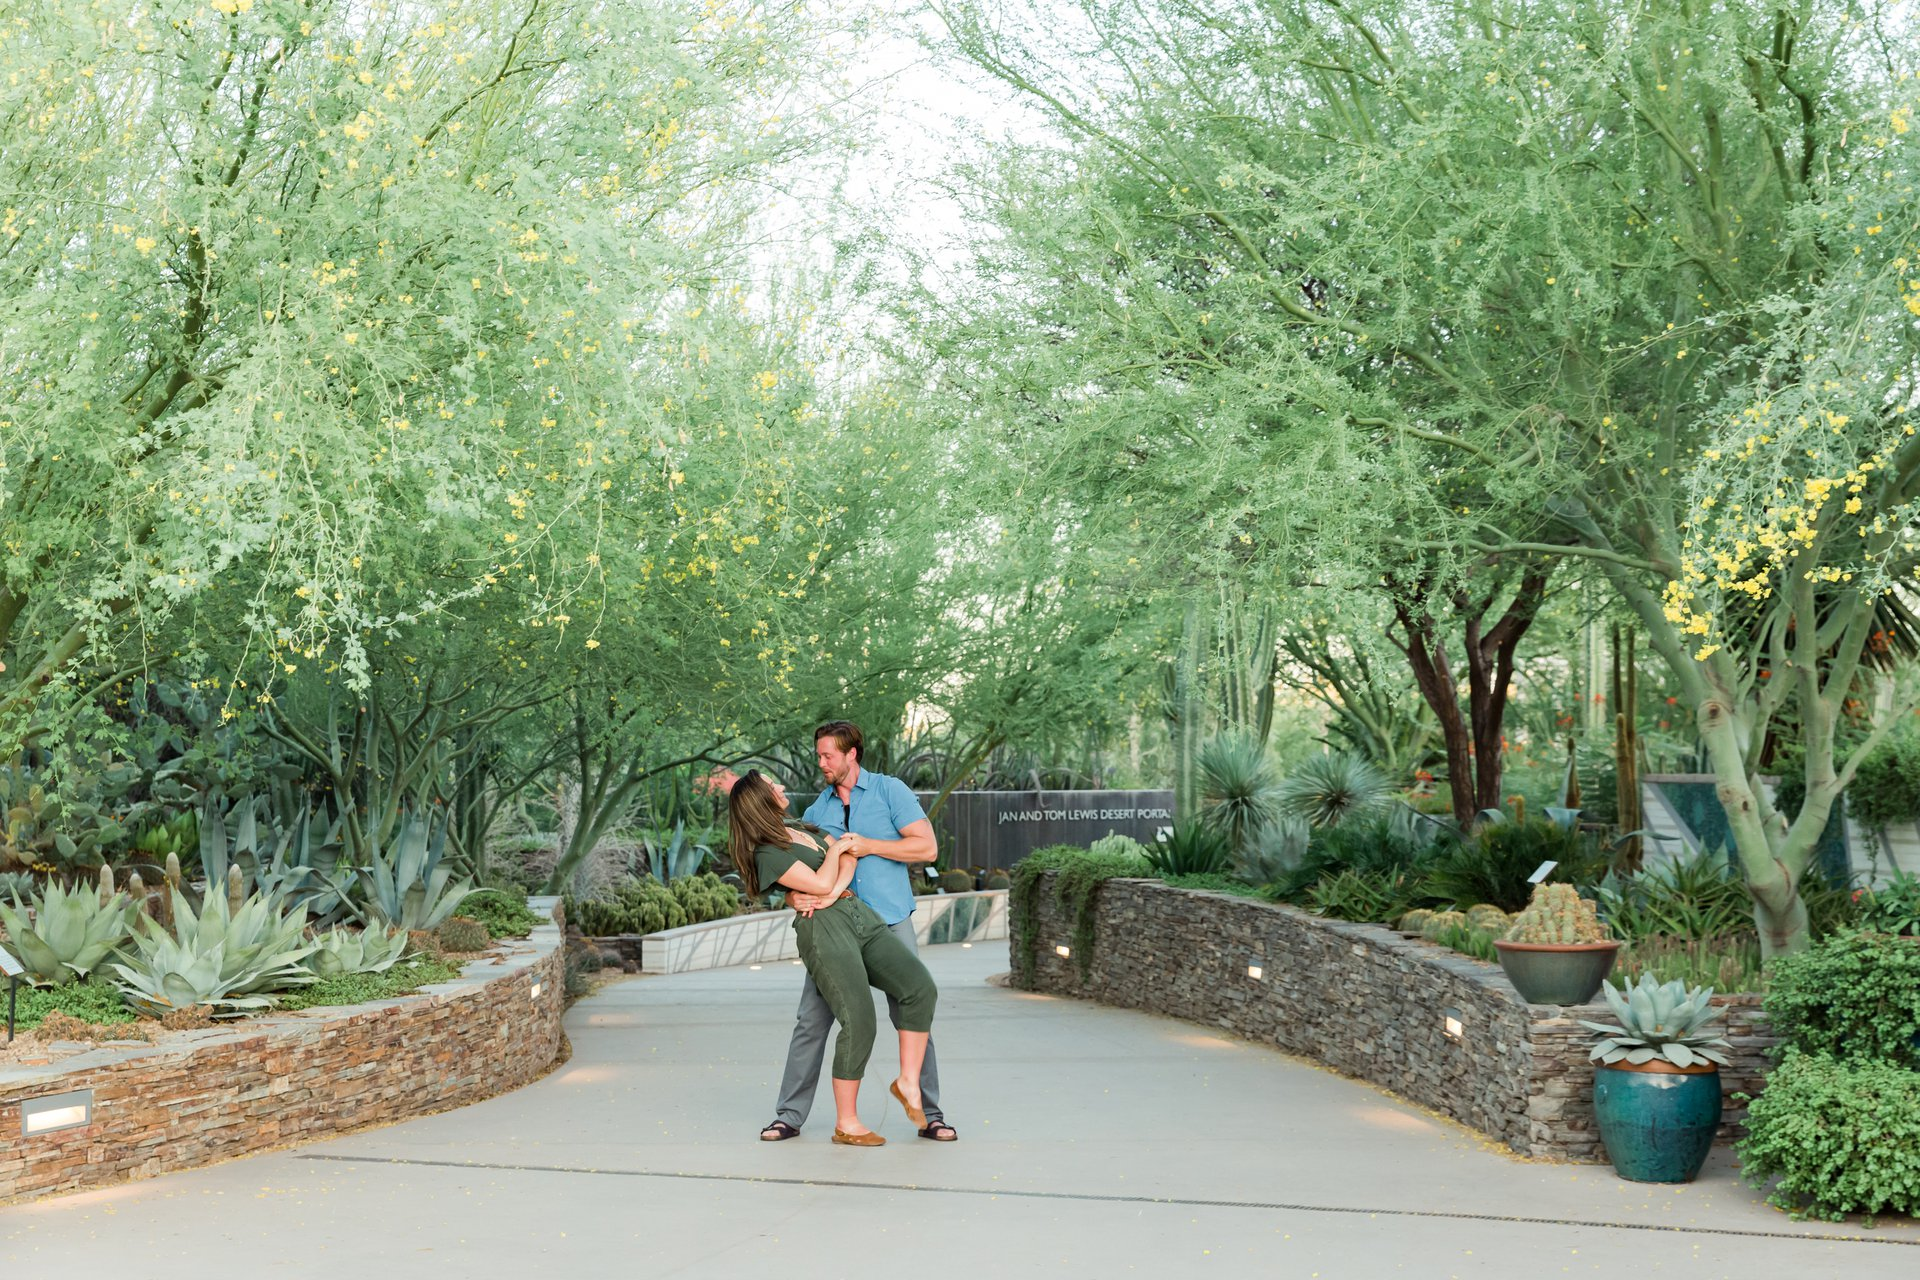 Scottsdale-United States-travel-story-Flytographer-24